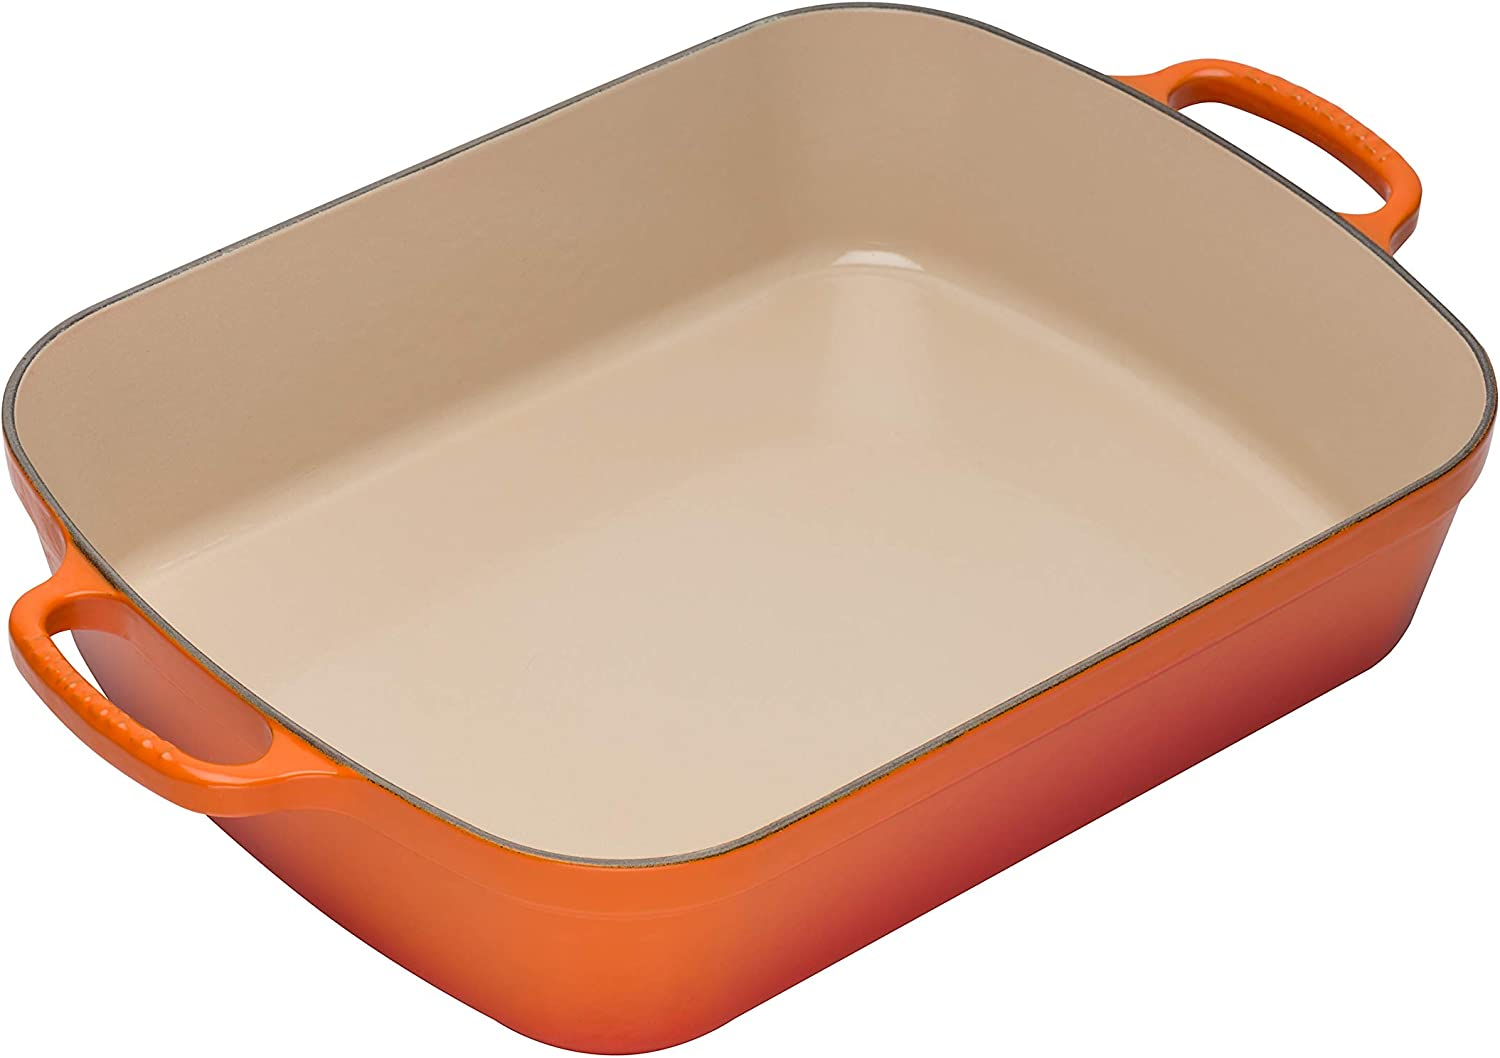 "Le Creuset Enameled Cast Iron Signature Rectangular Roaster, 5.25 qt. (11.7"" x 16.8"") , Oyster"